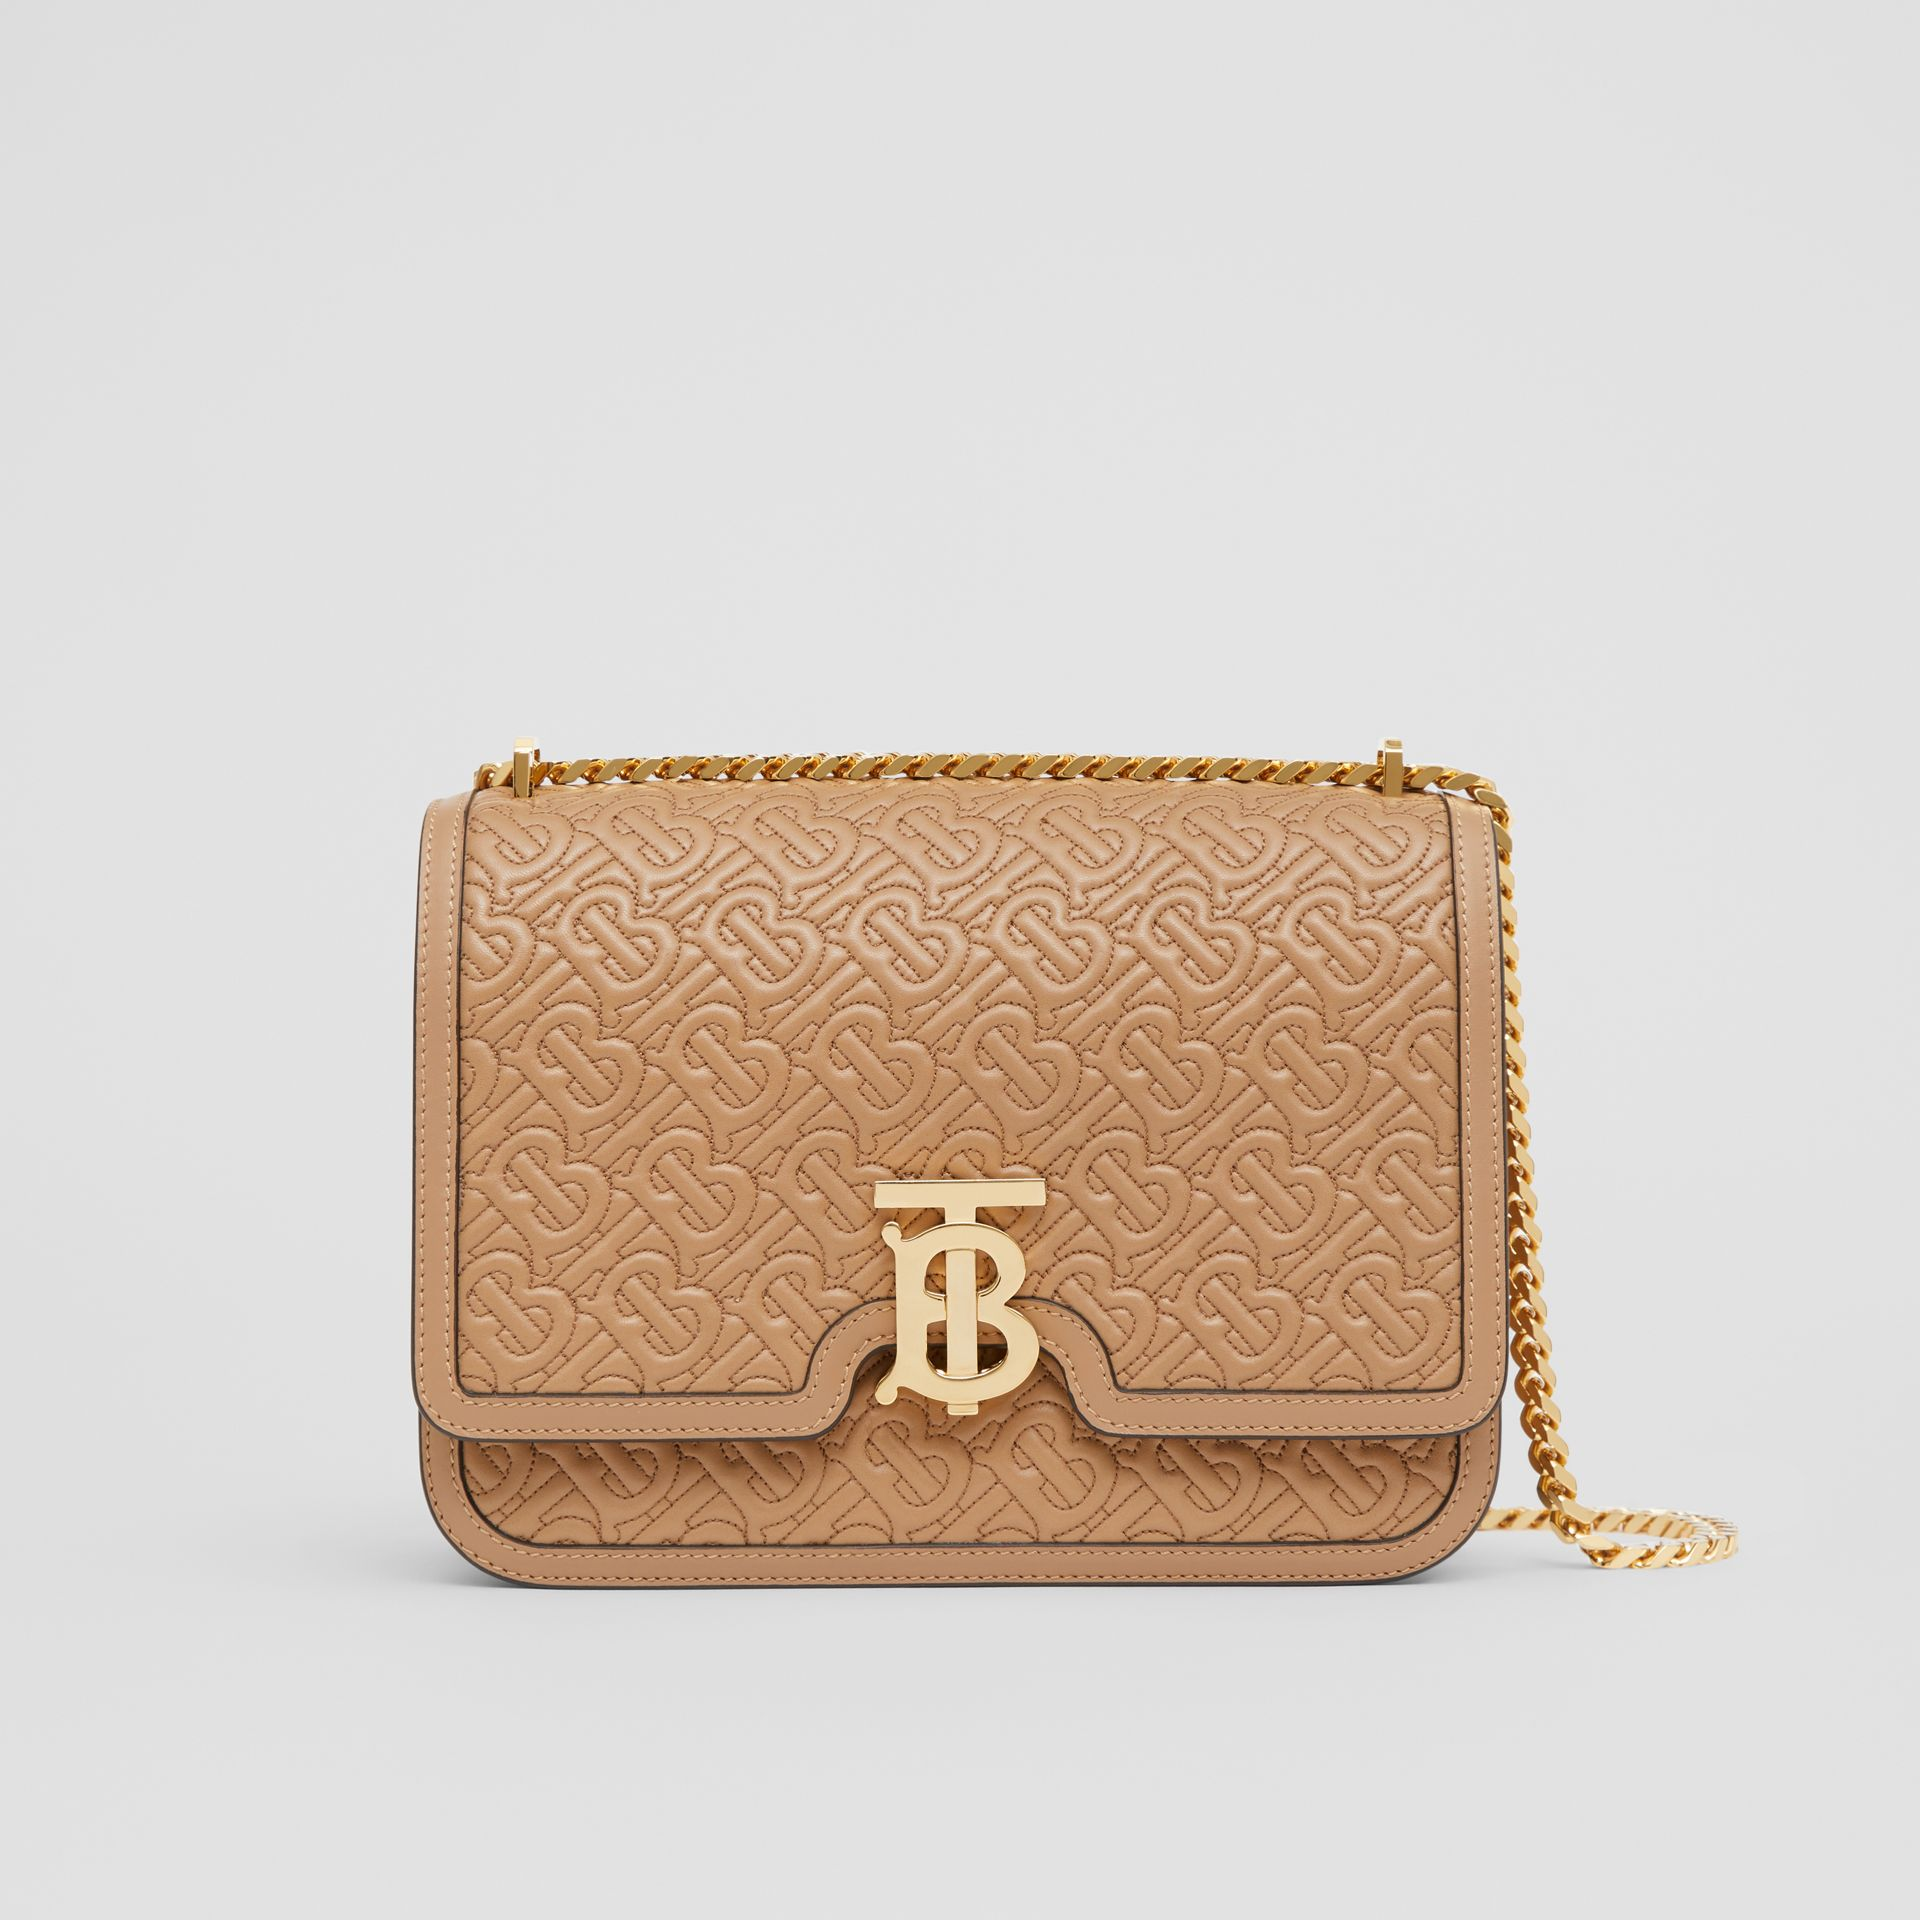 Medium Quilted Monogram Lambskin TB Bag in Honey - Women | Burberry Hong Kong S.A.R. - gallery image 0